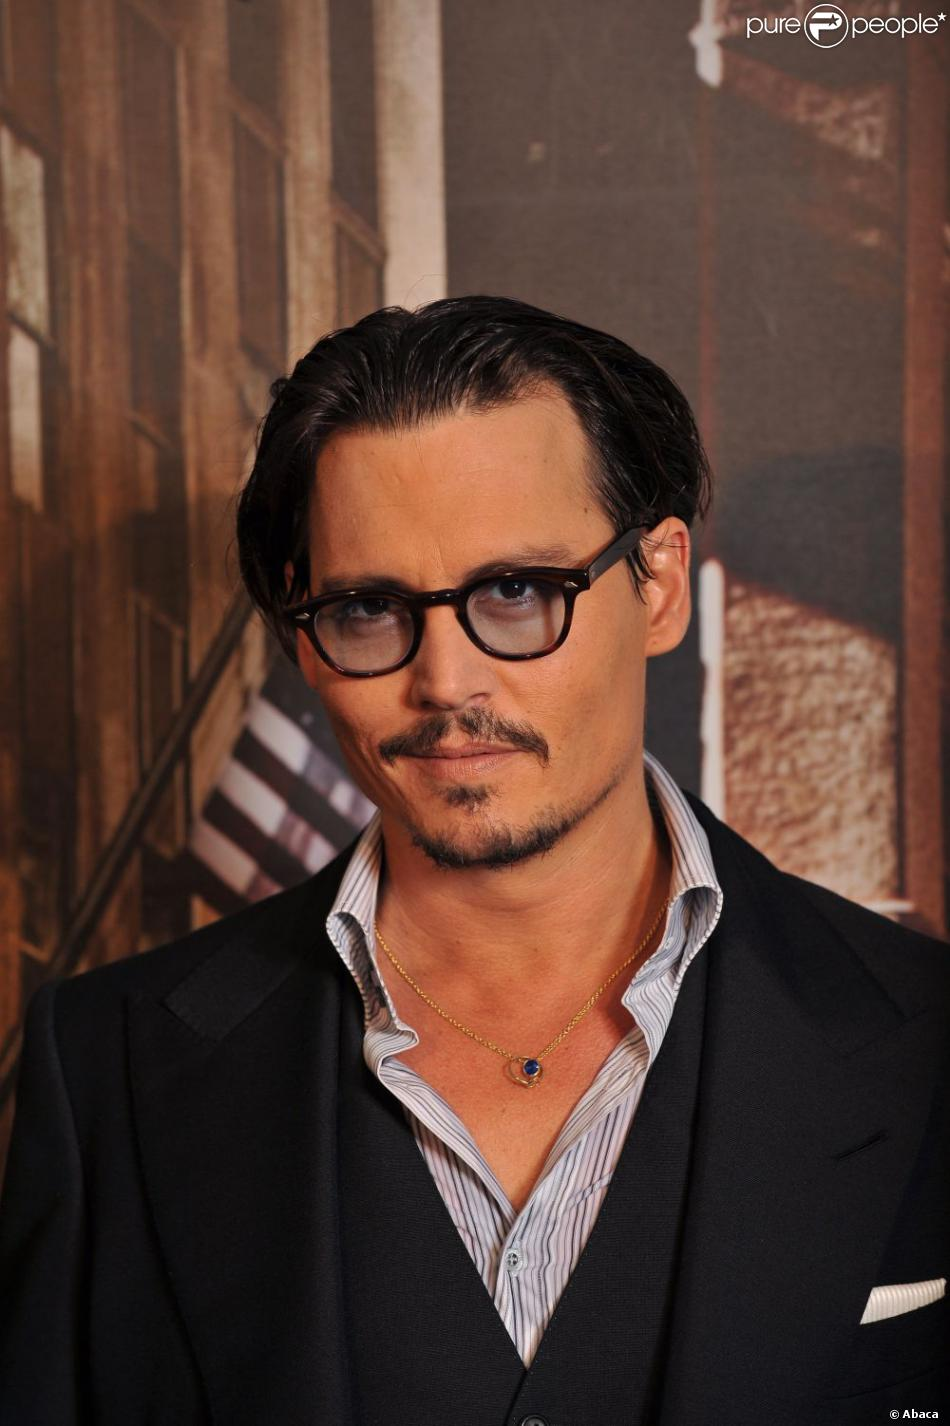 Cast member Johnny Depp arriving for the French premiere of 'Public Enemies' at Cinema Gaumont Marignan in Paris, France on July 2, 2009. Photo by Thierry Orban/ABACAPRESS.COM03/07/2009 - Paris